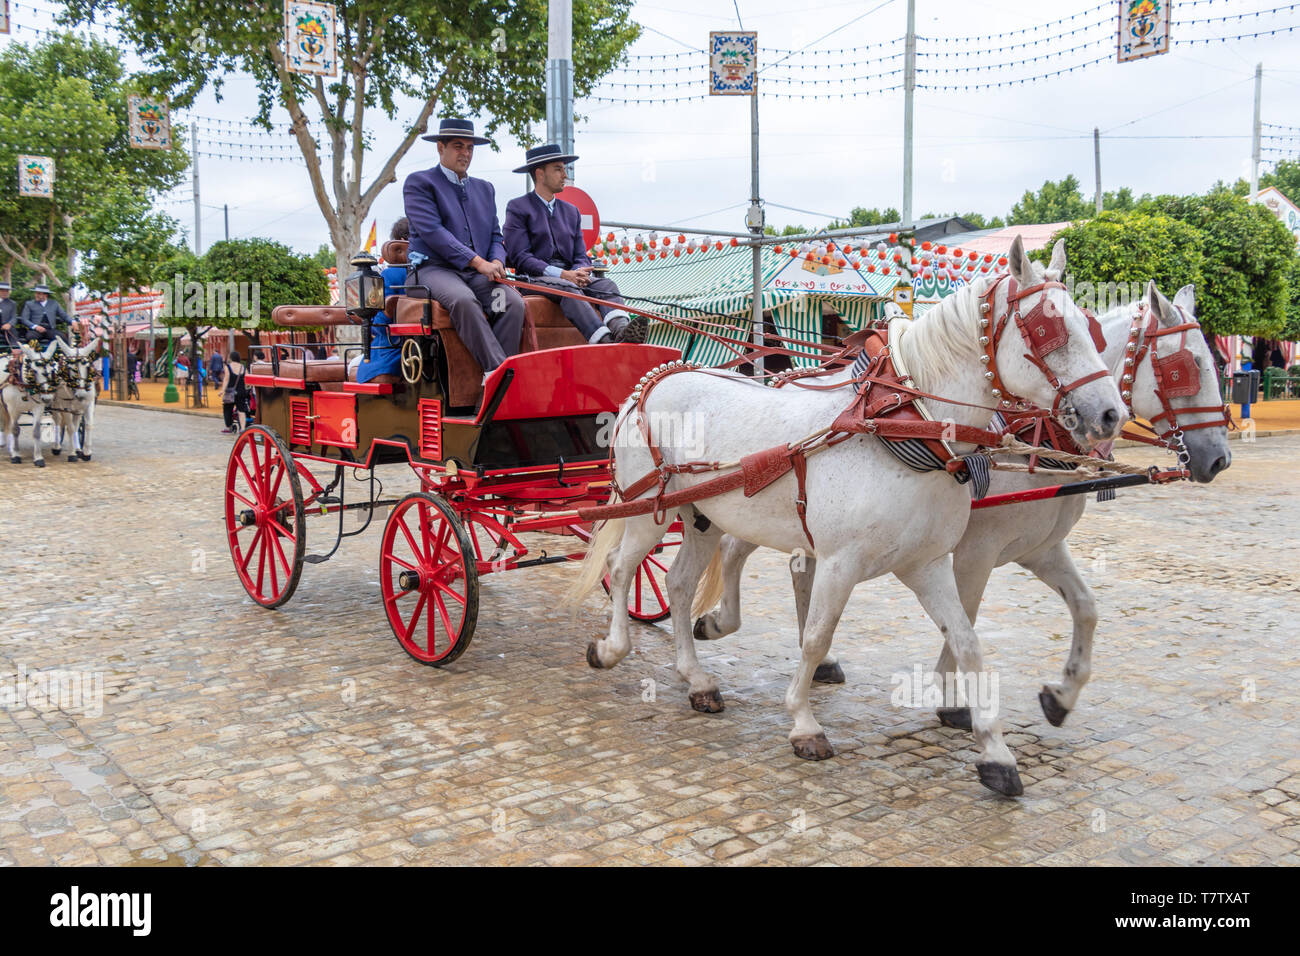 Seville, Spain - May 5, 2019: Horse drawn carriage during the the April Fair of Seville on May, 5, 2019 in Seville, Spain - Stock Image